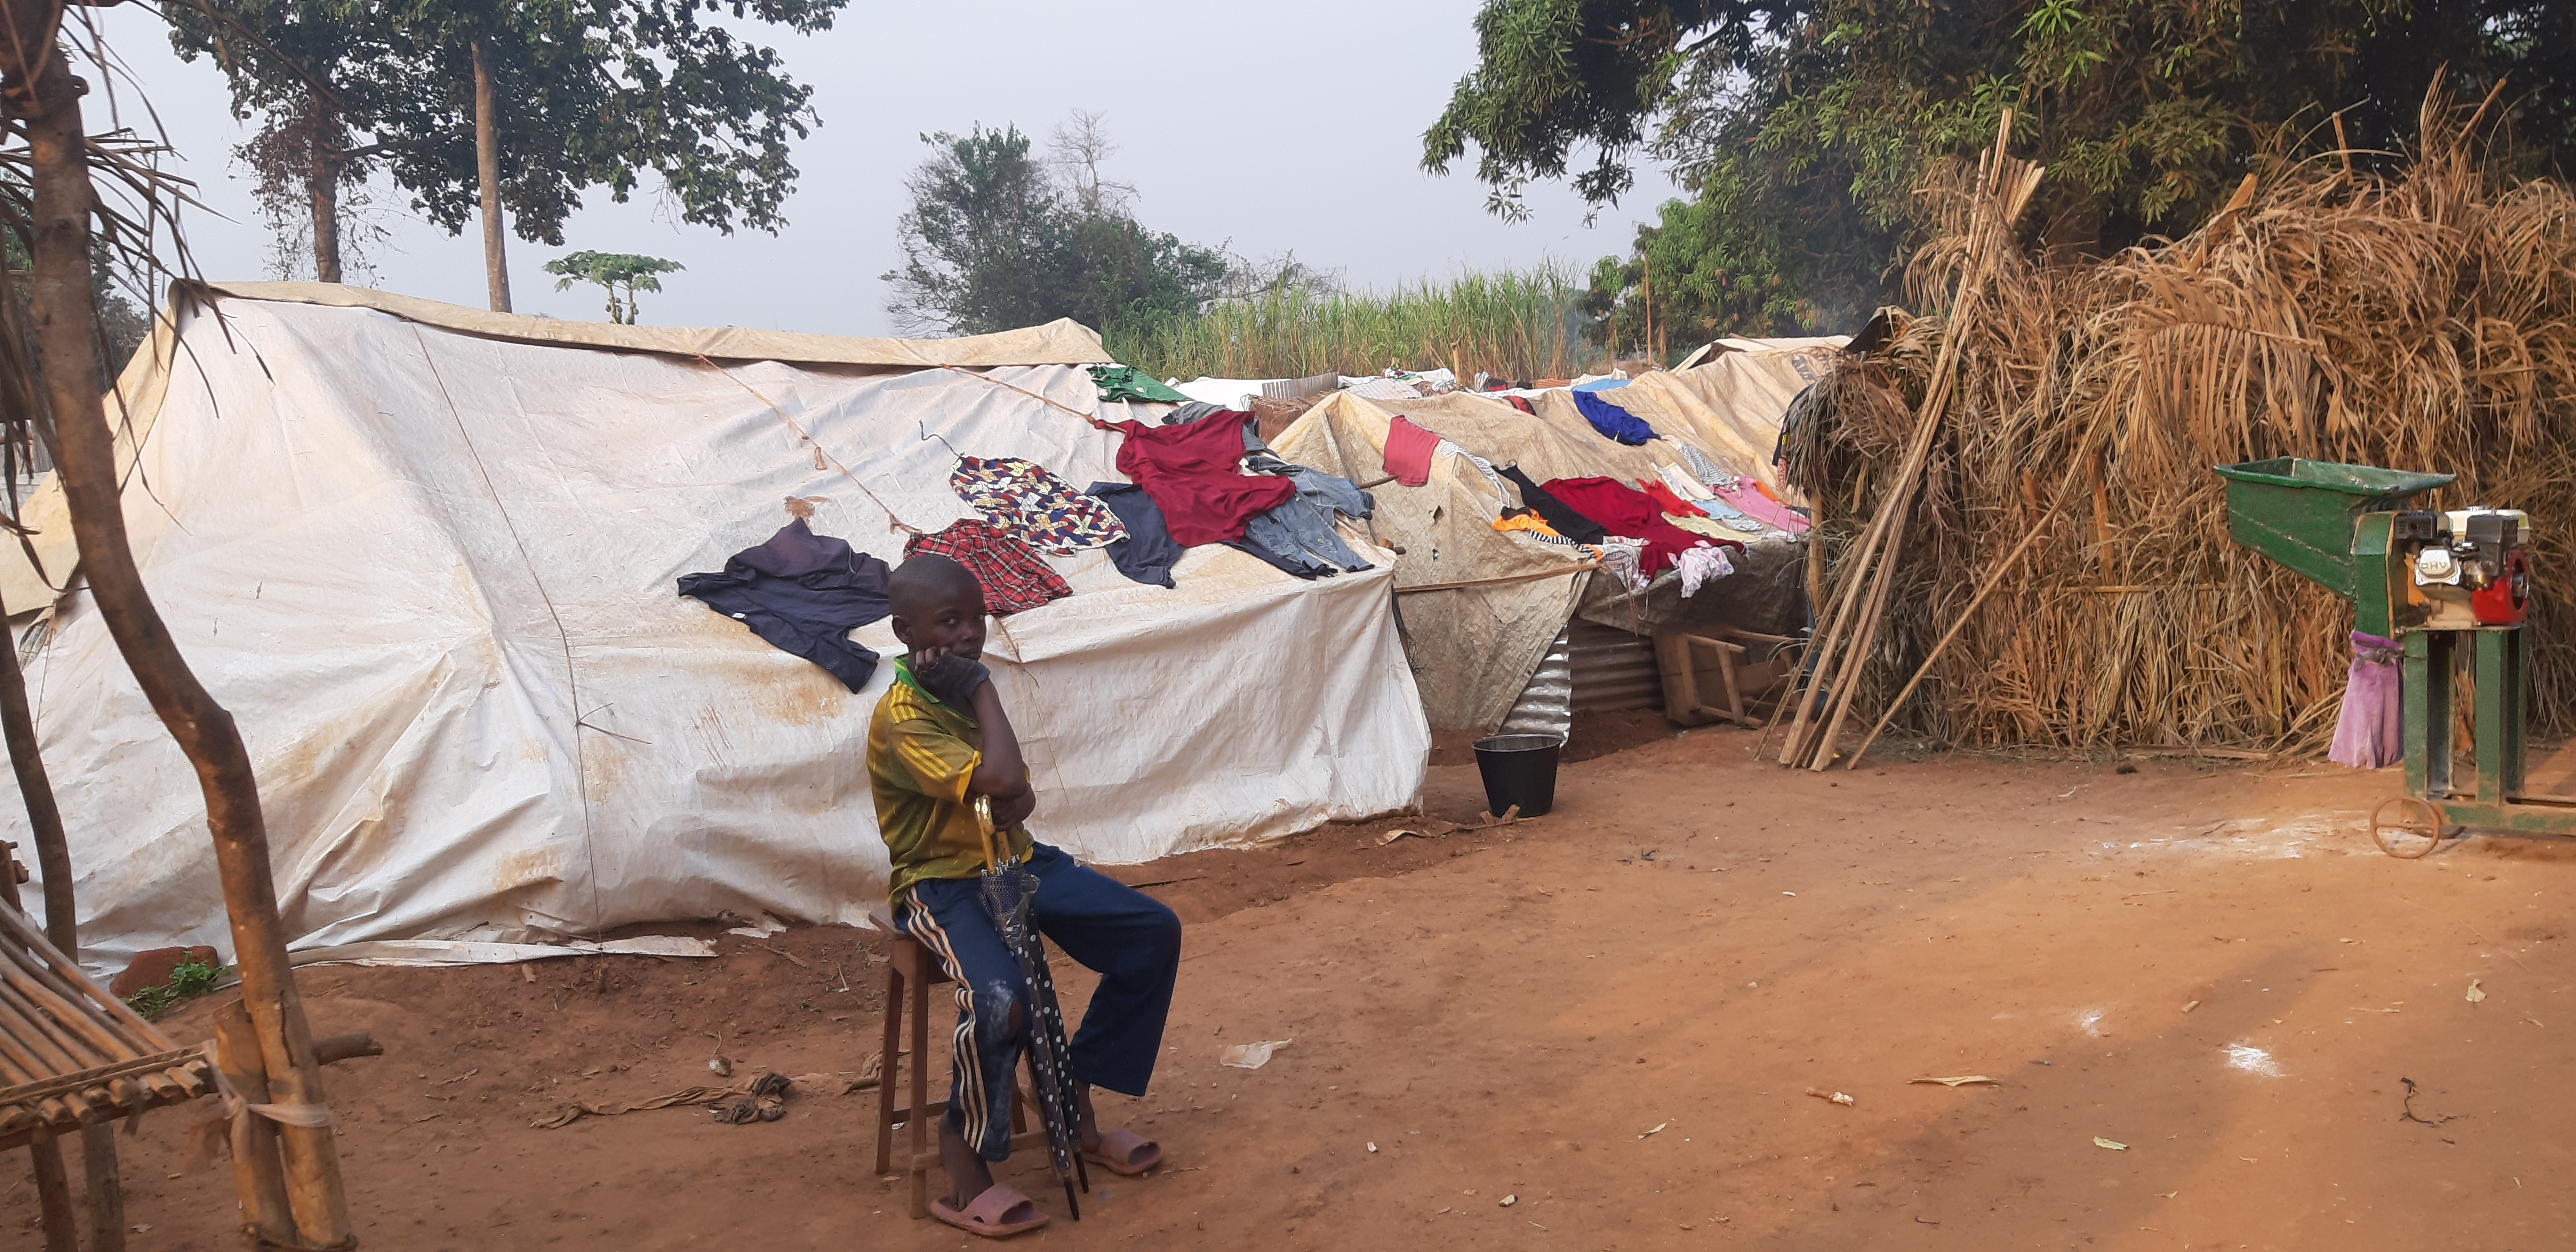 Boy sits in front of tents in camp in Central African Republic